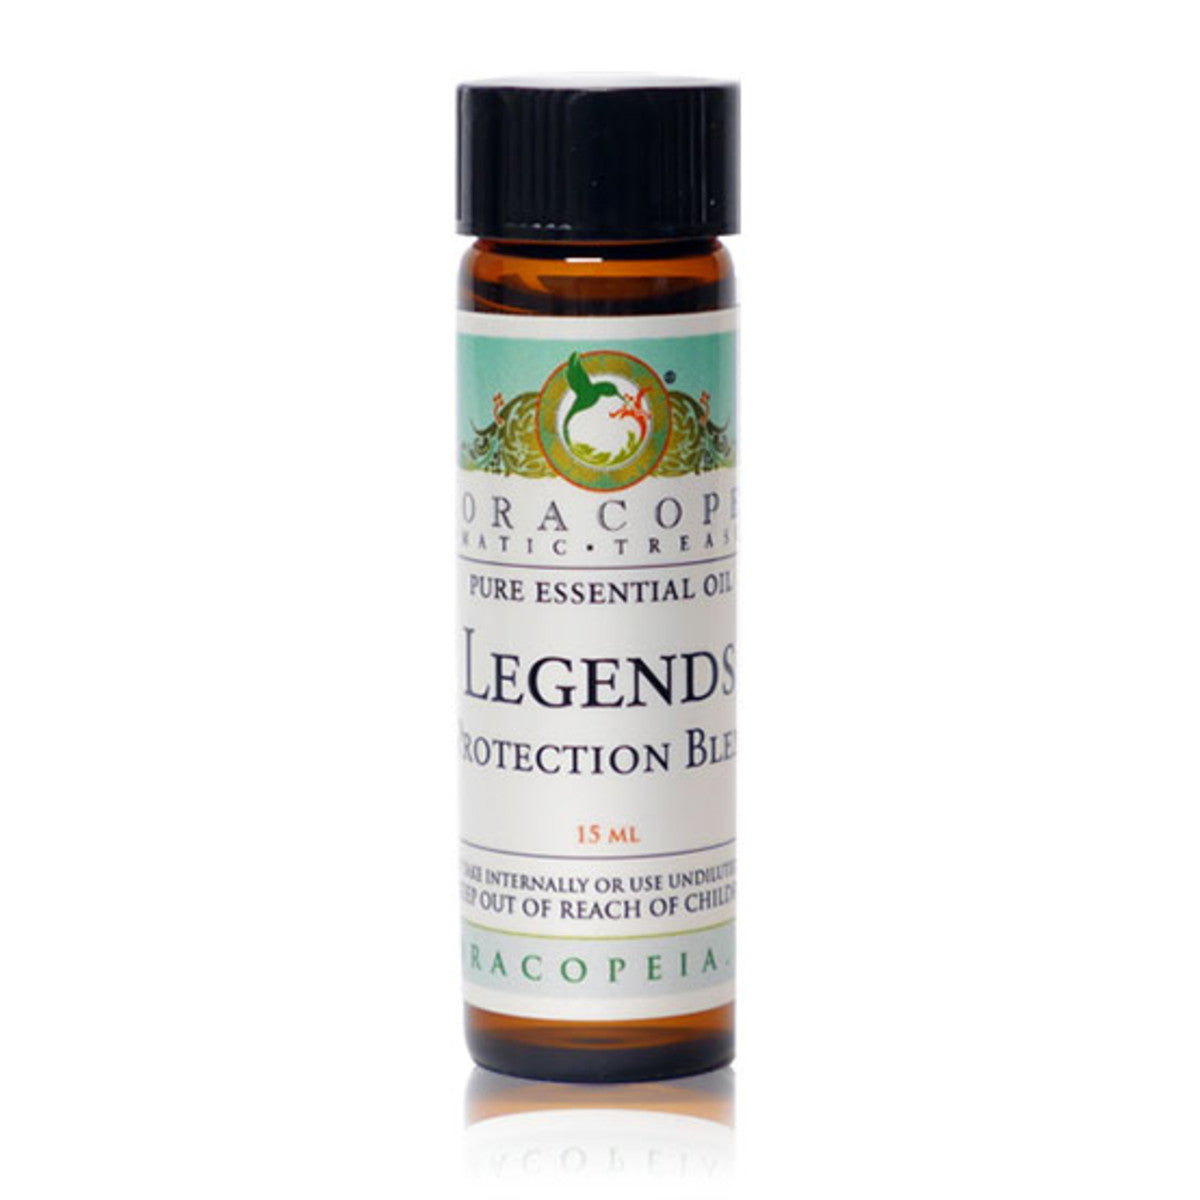 LEGENDS WELLNESS PROTECTION ESSENTIAL OIL